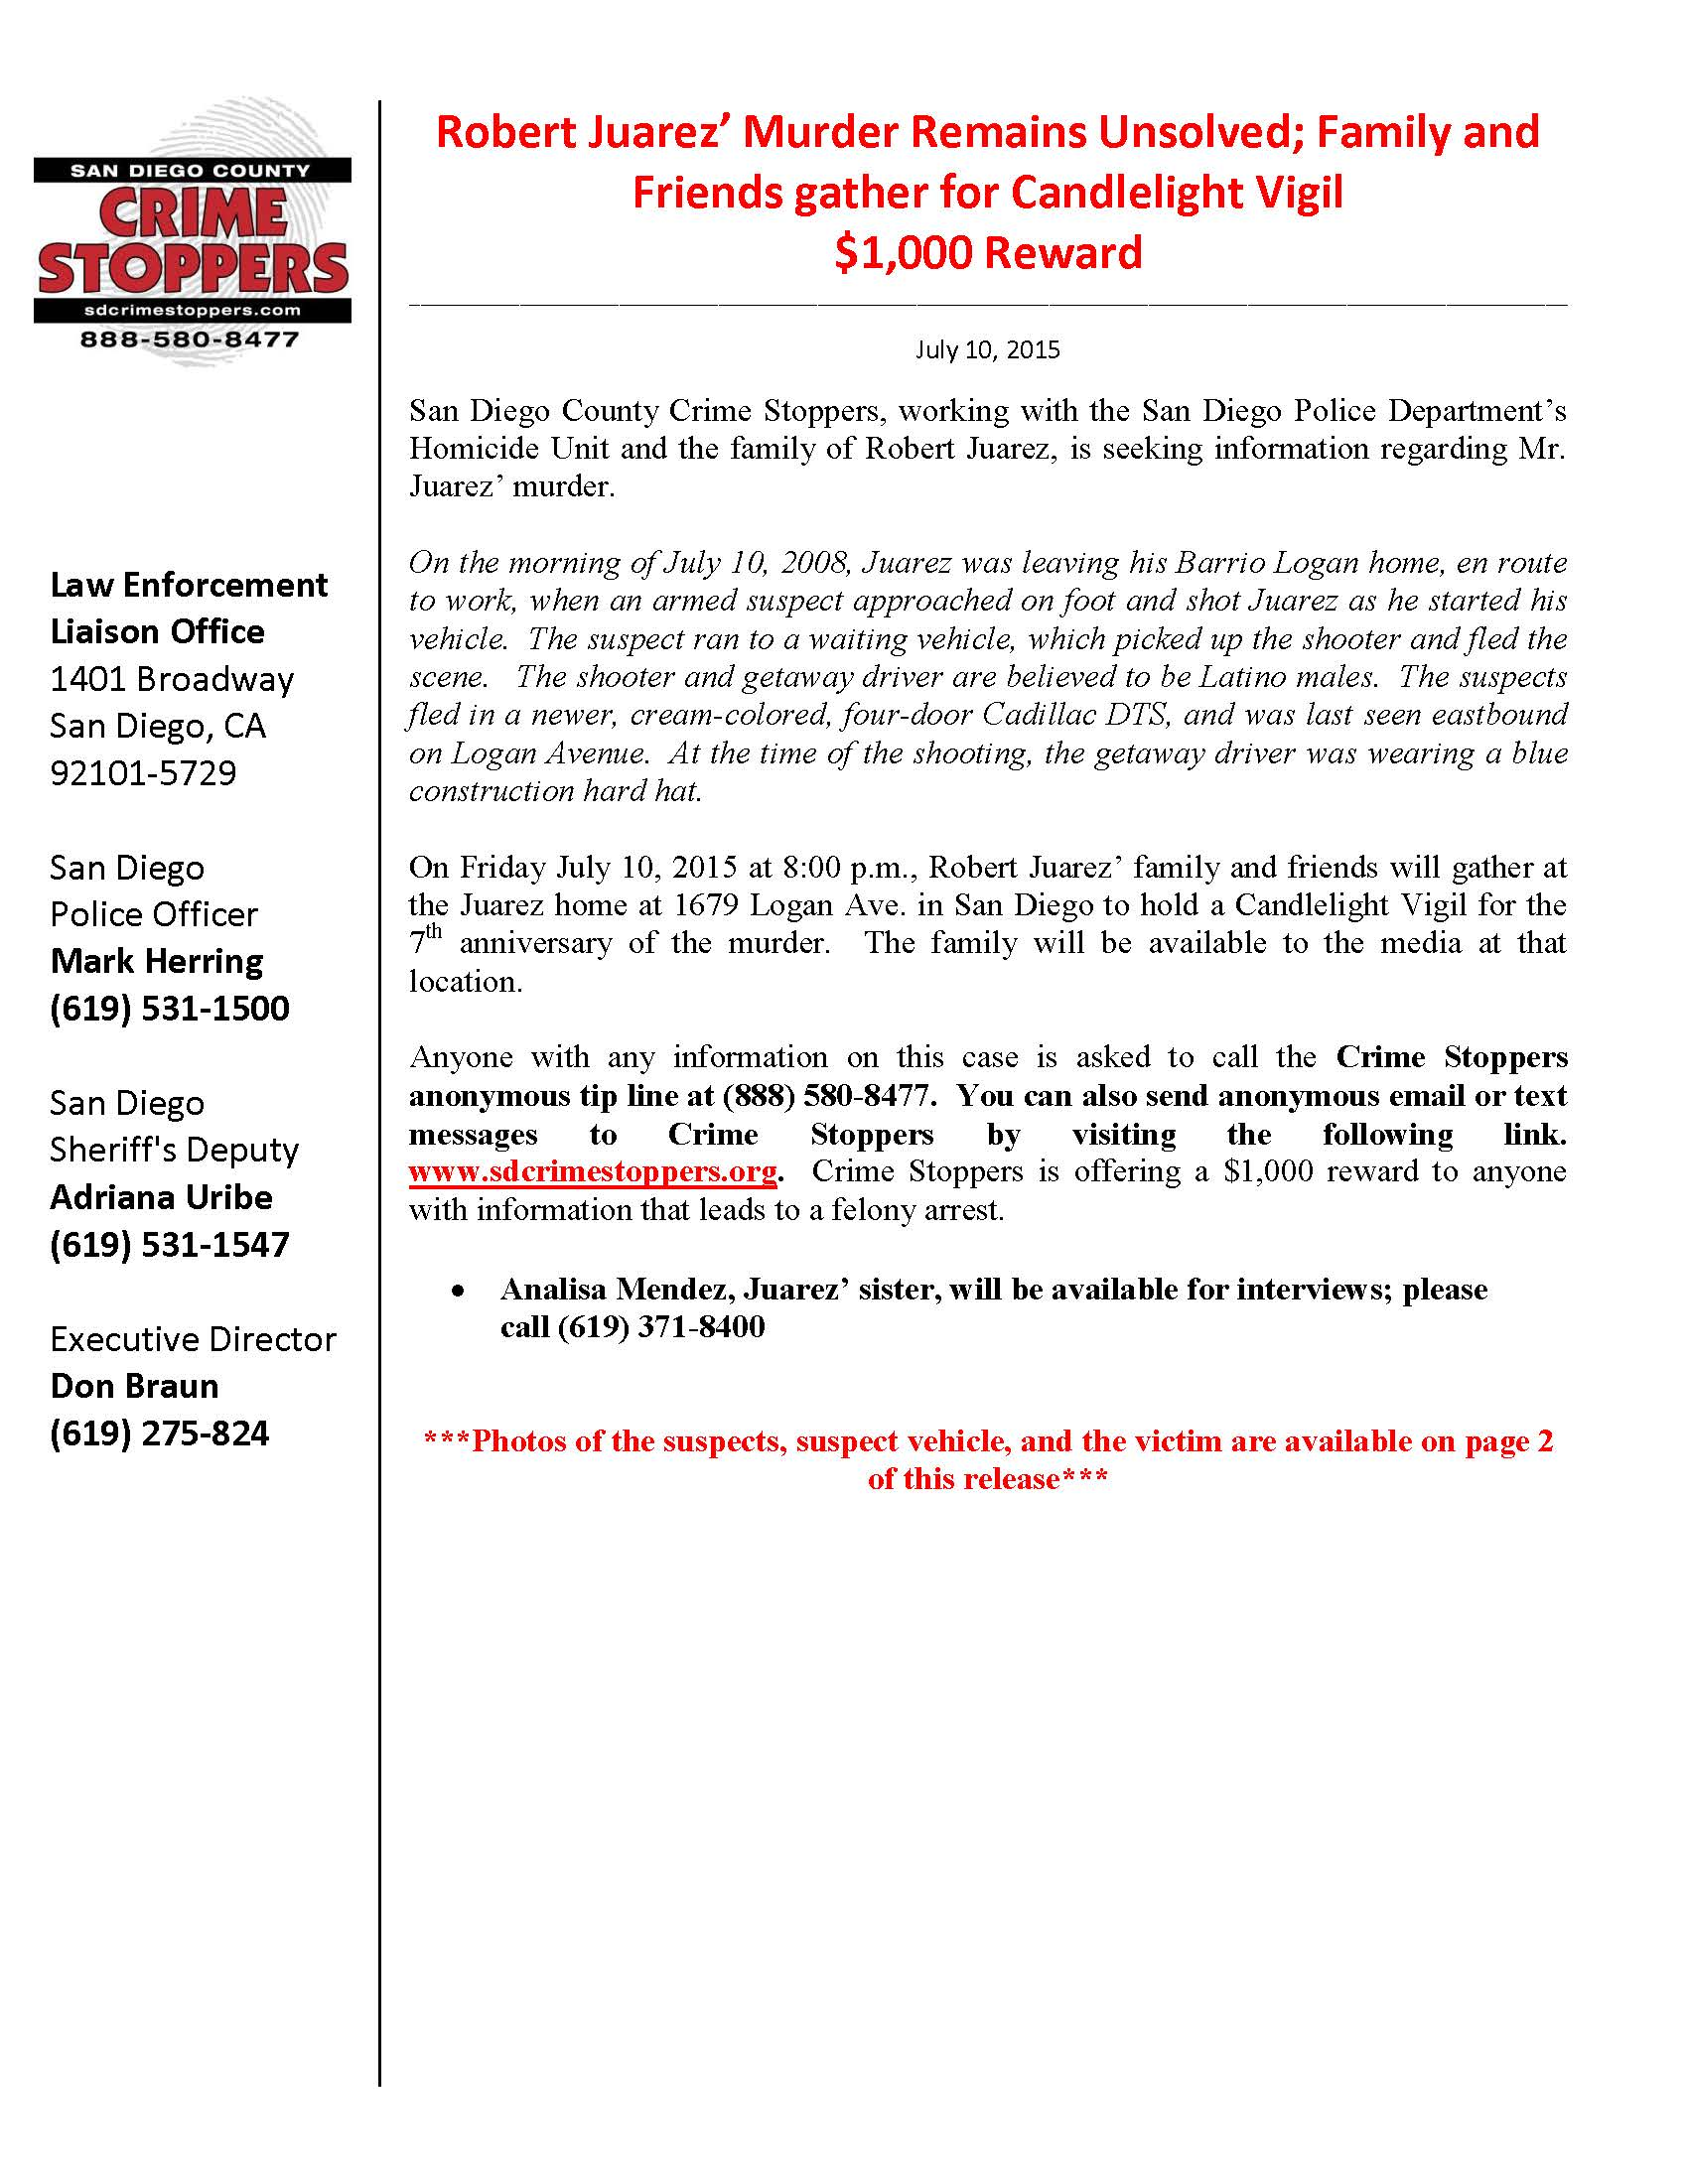 071015 Robert Juarez Homicide 7th Anniversary_Page_1